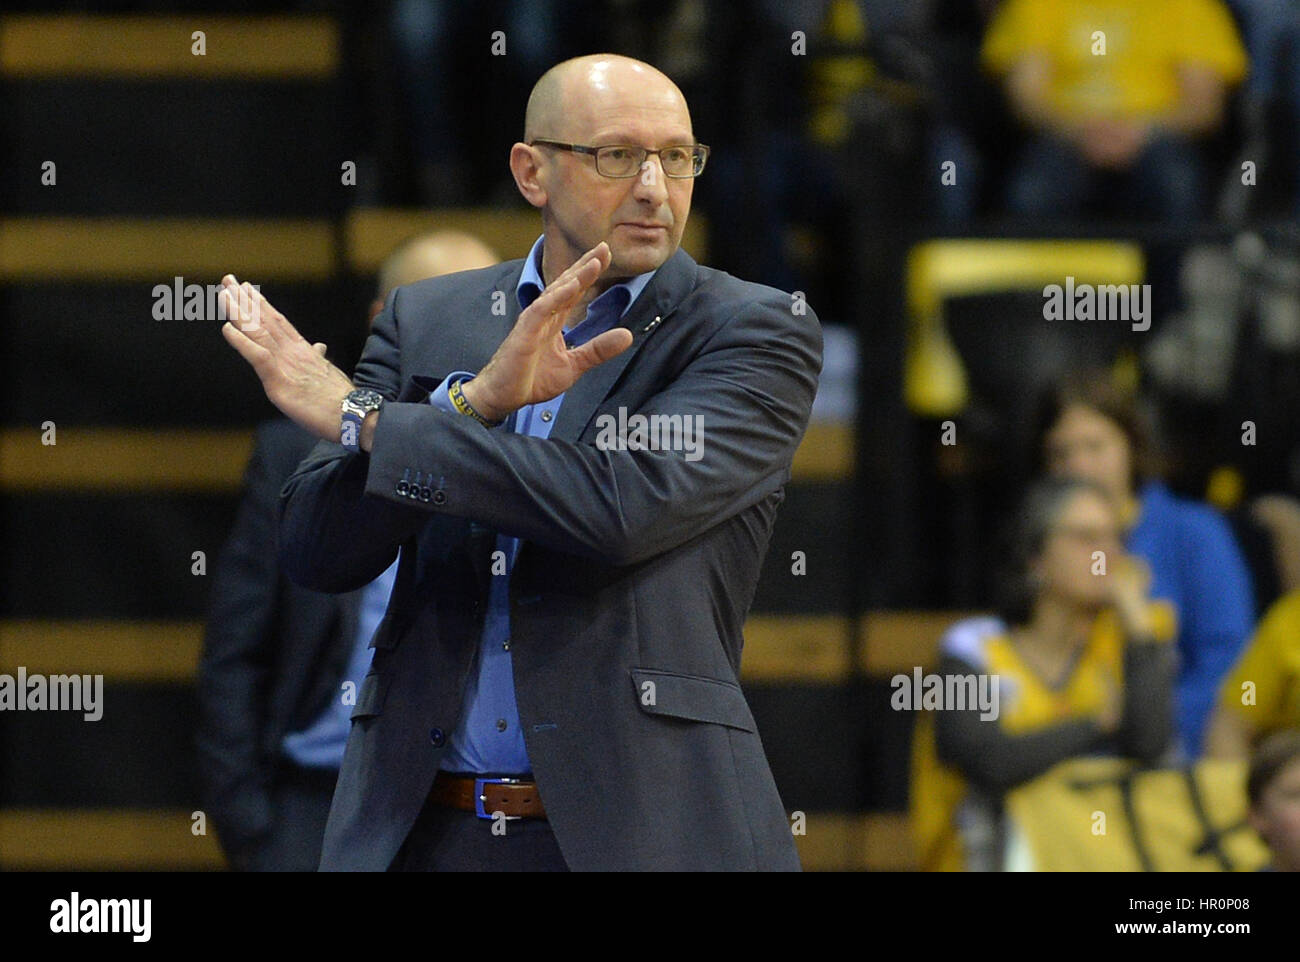 Oldenburg's coach Mladen Drijencic gestures on the sideline during the game between EWE Baskets Oldenburg vs. - Stock Image